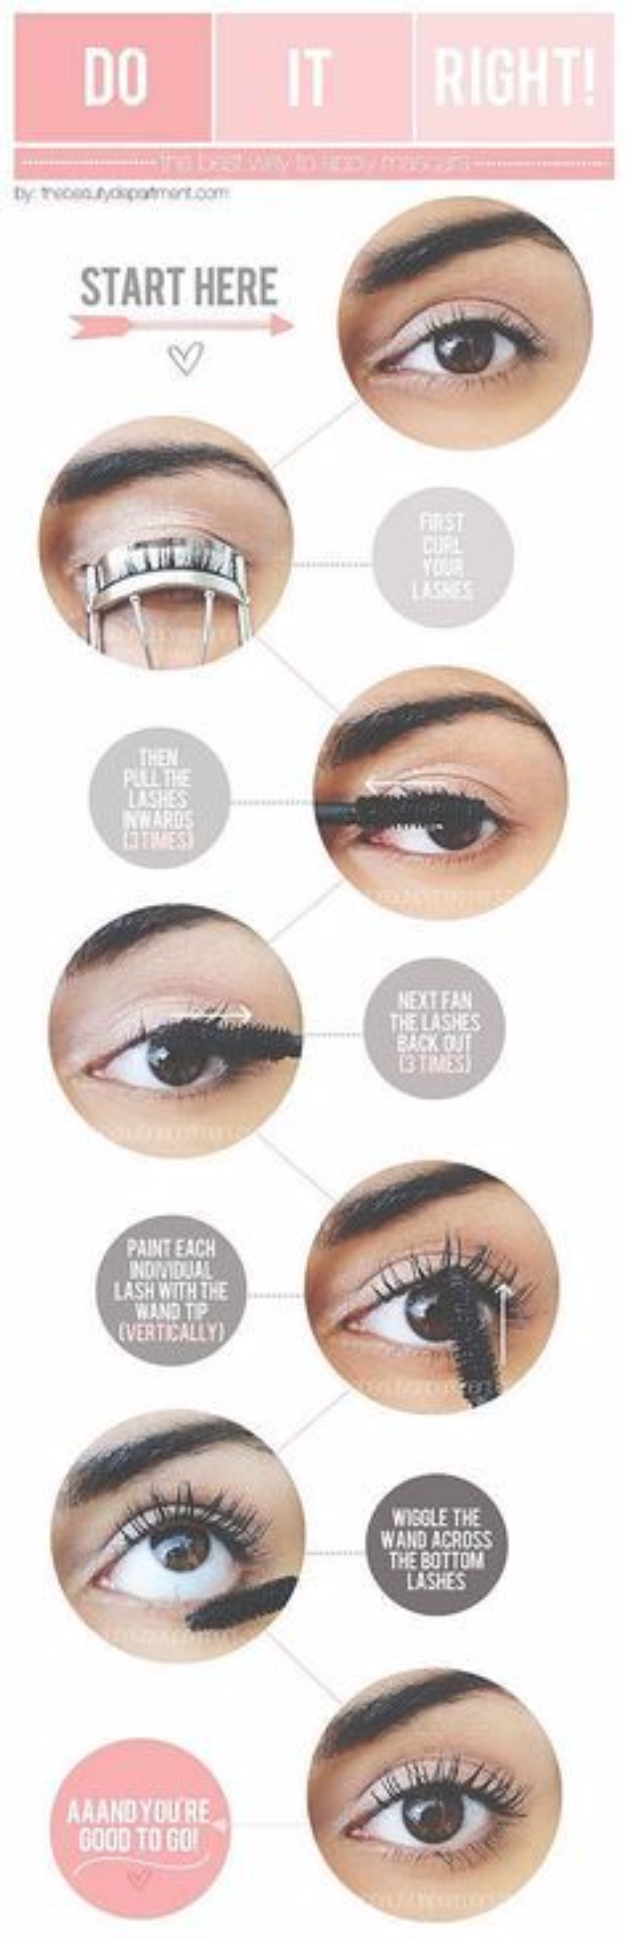 DIY Beauty Hacks - Apply Mascara Perfectly - Cool Tips for Makeup, Hair and Nails - Step by Step Tutorials for Fixing Broken Makeup, Eye Shadow, Mascara, Foundation - Quick Beauty Ideas for Best Looks in A Hurry #beautyhacks #makeup